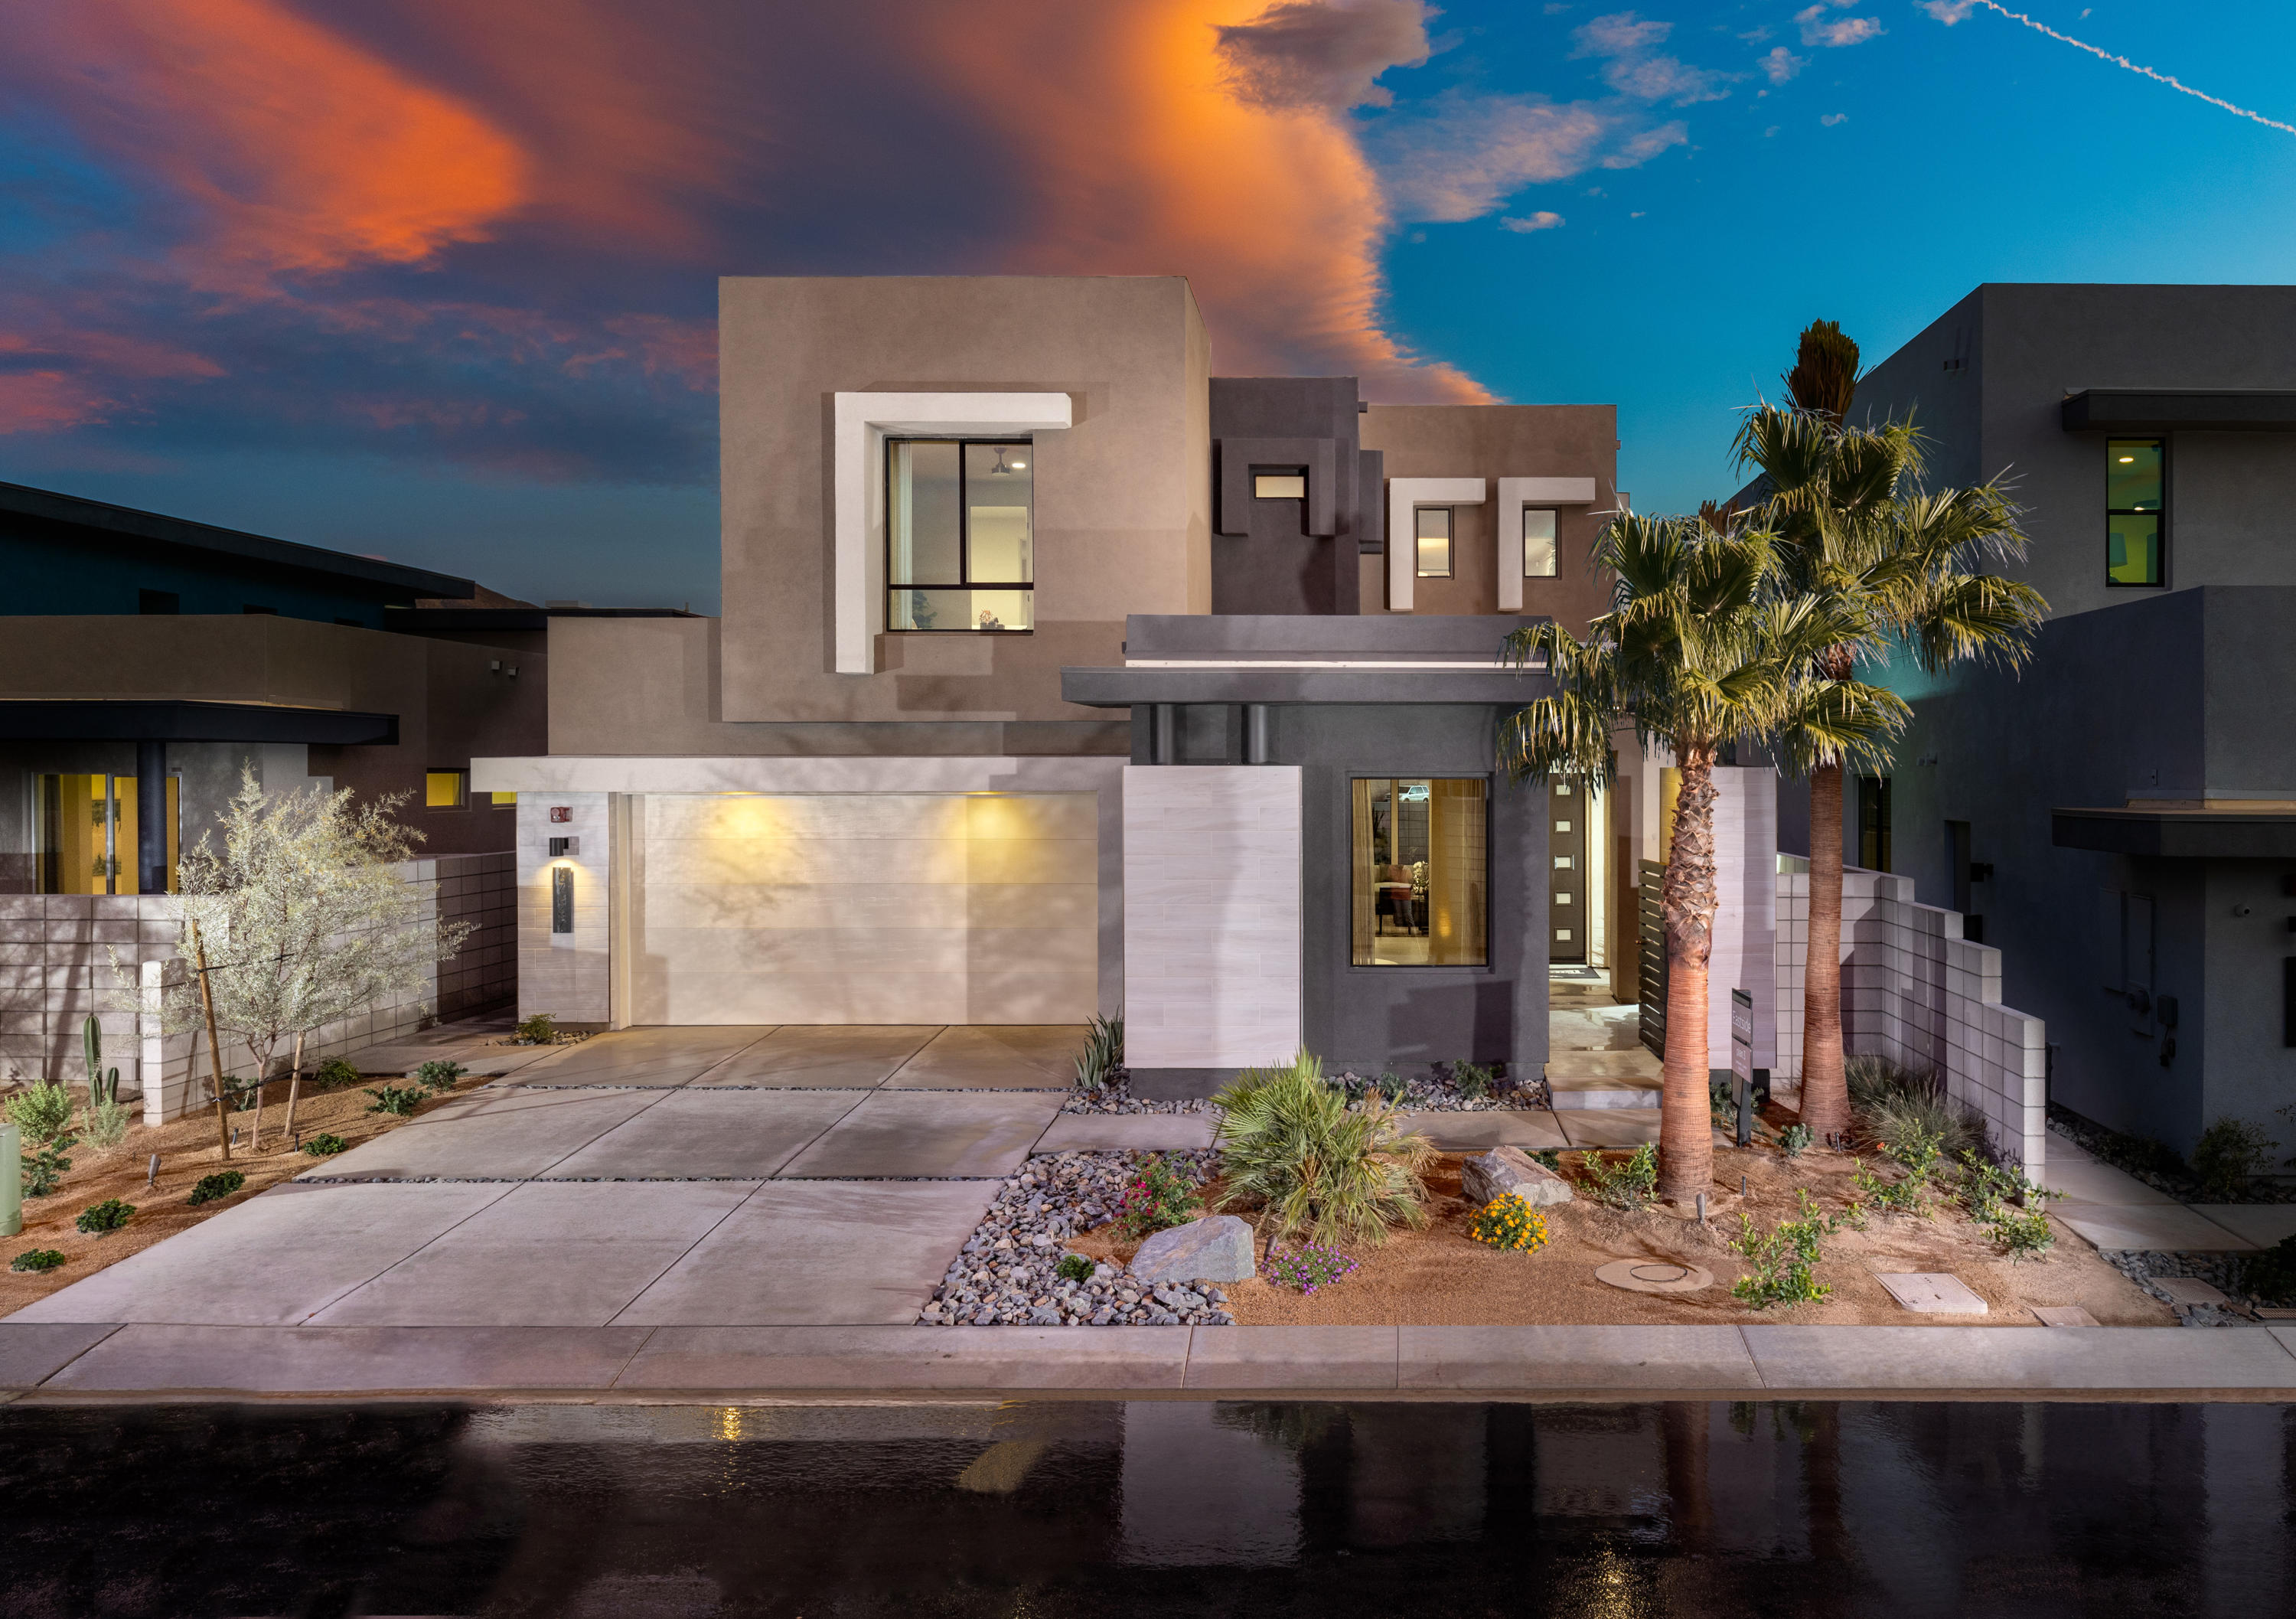 Welcome to the District East, largest floor plan, Eastside Plan 3, Lot 43 on the edge of Palm Springs! 3 Bedroom and 3 Bath.  Master retreat has sitting room and balcony! Plus Jr. Suite with double vanity and walk in closet.  Open concept 21 Century living, 8' low-e glass triple sliding glass doors that lead out to a beautiful patio with Spa/Spool Combo included! 24x24 porcelain tile in all living areas and designer carpet in the bedrooms. Kitchen Appliances included. Home is Pre-wired for speakers in great room, outdoor living, and master bedroom. Social Kitchen with Quartz countertops & full backsplash, the list goes on and on, these homes really are a must see. Call to schedule an appointment! Home will be ready Feb 2020 est.